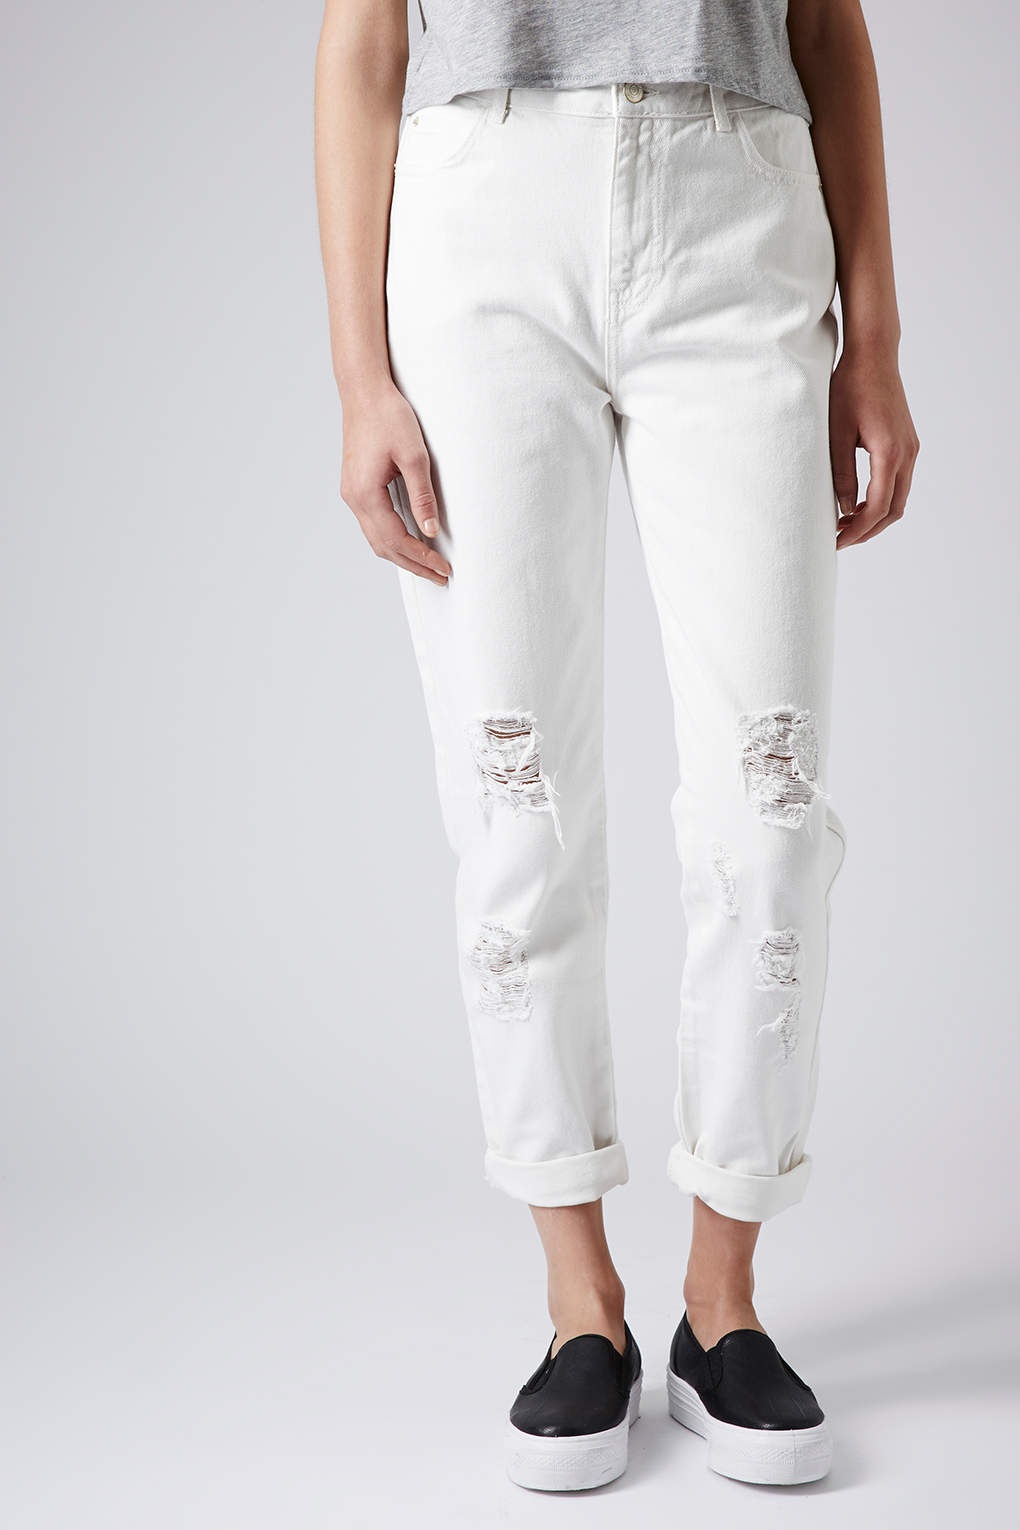 Topshop Moto White Ripped Mom Jeans Lyst